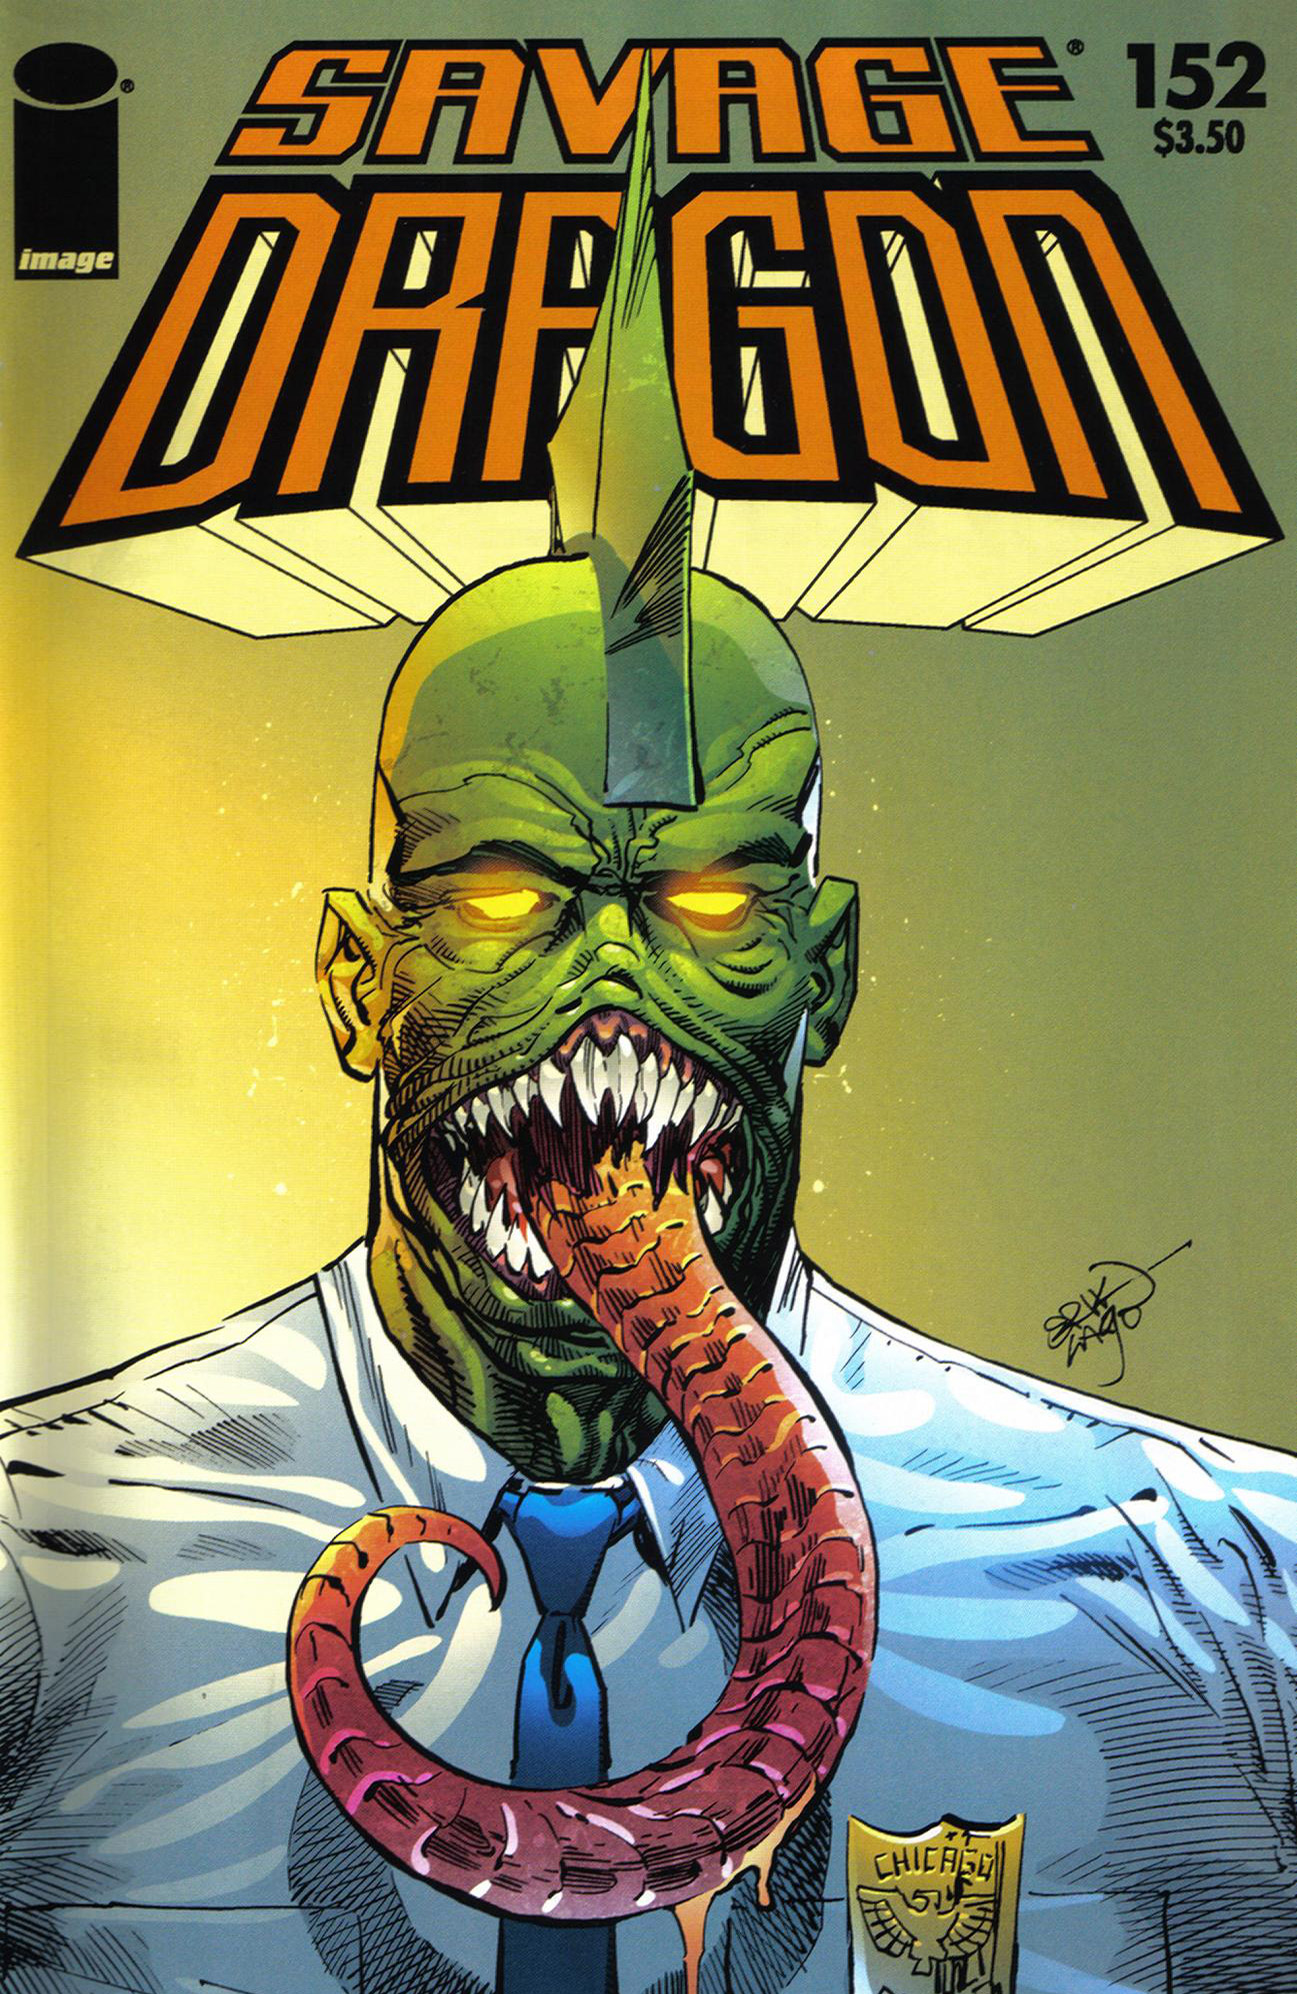 Cover Savage Dragon Vol.2 #152